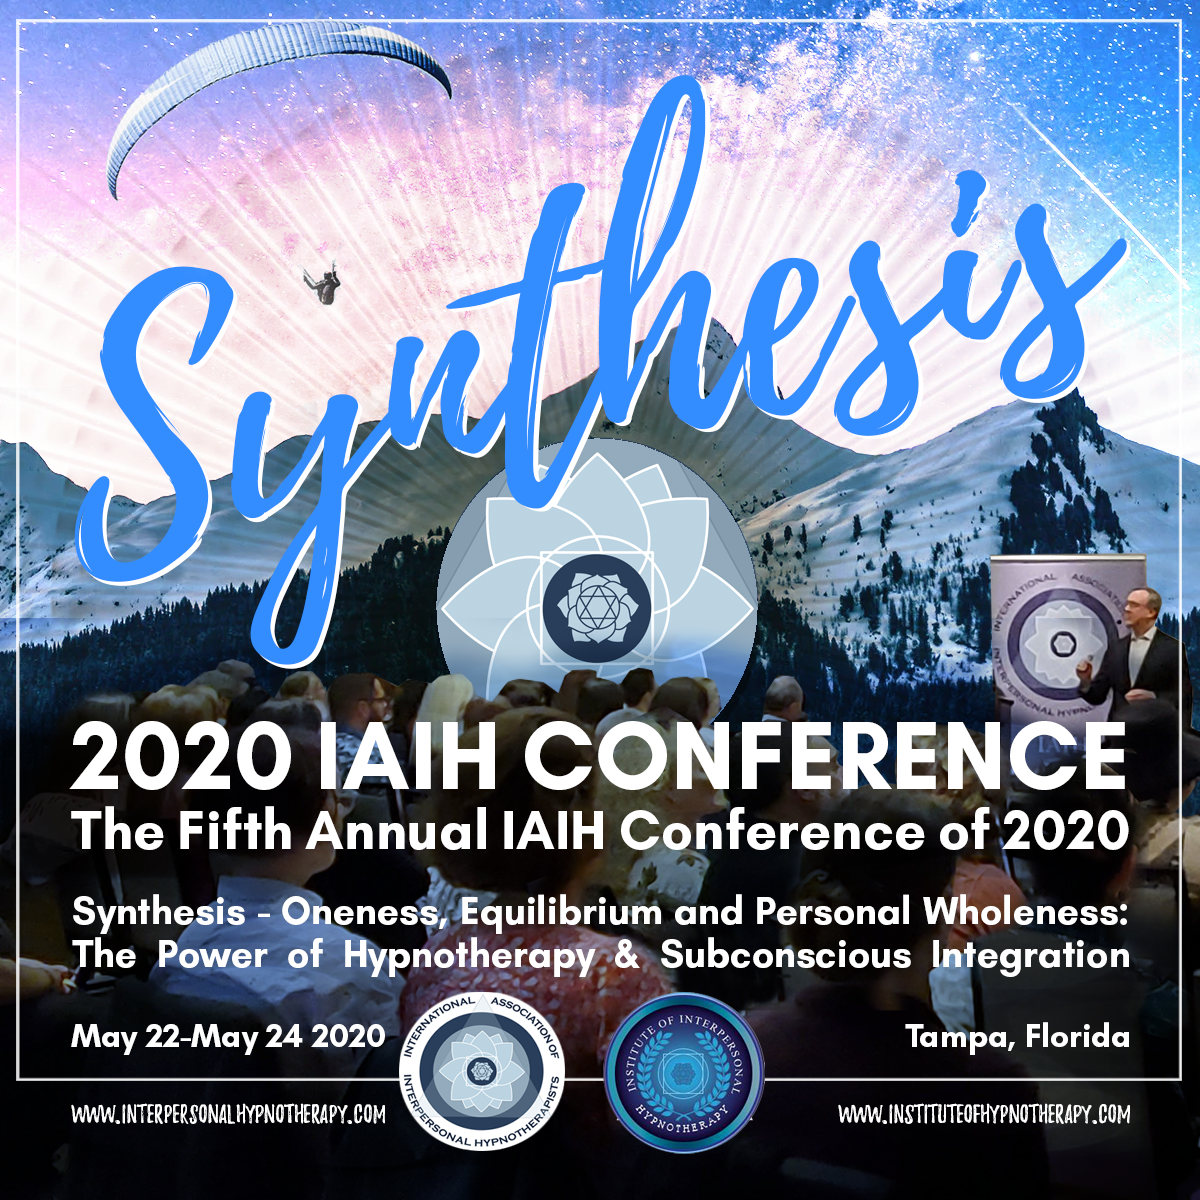 RESCHEDULING Fifth Annual IAIH Interpersonal Hypnotherapy Conference for 2021